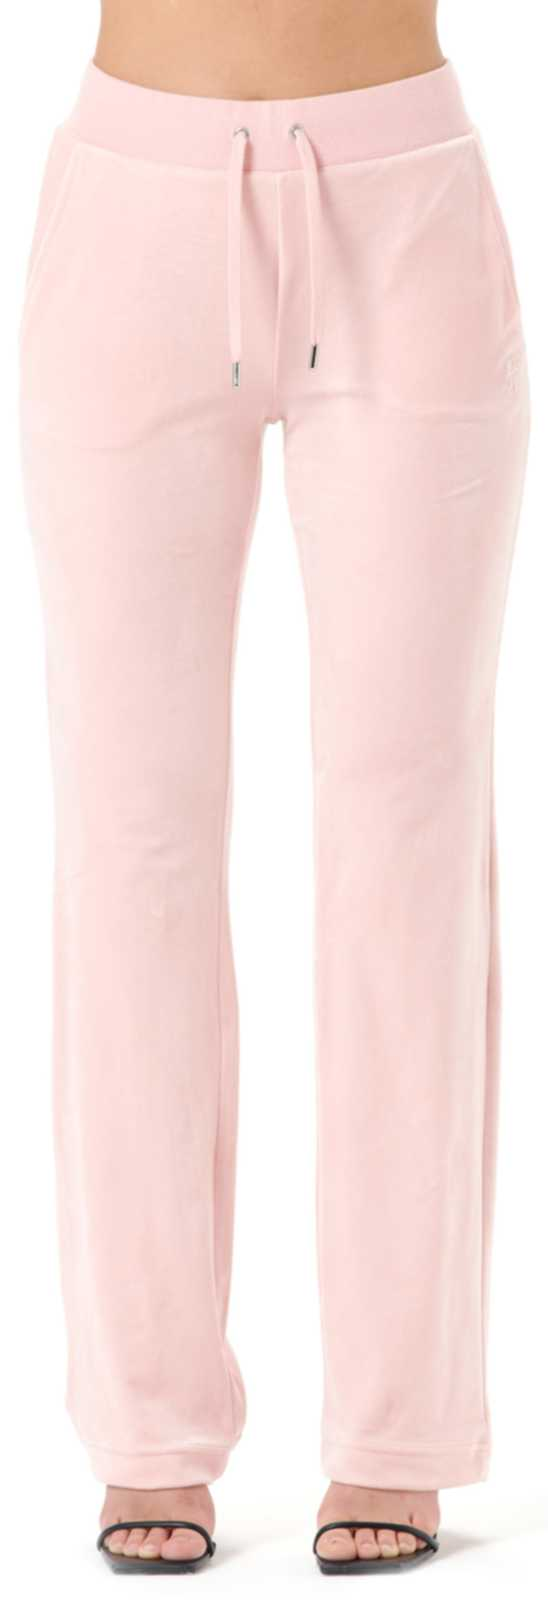 Juicy Couture Del Ray Velour Bottoms	Pale Pink